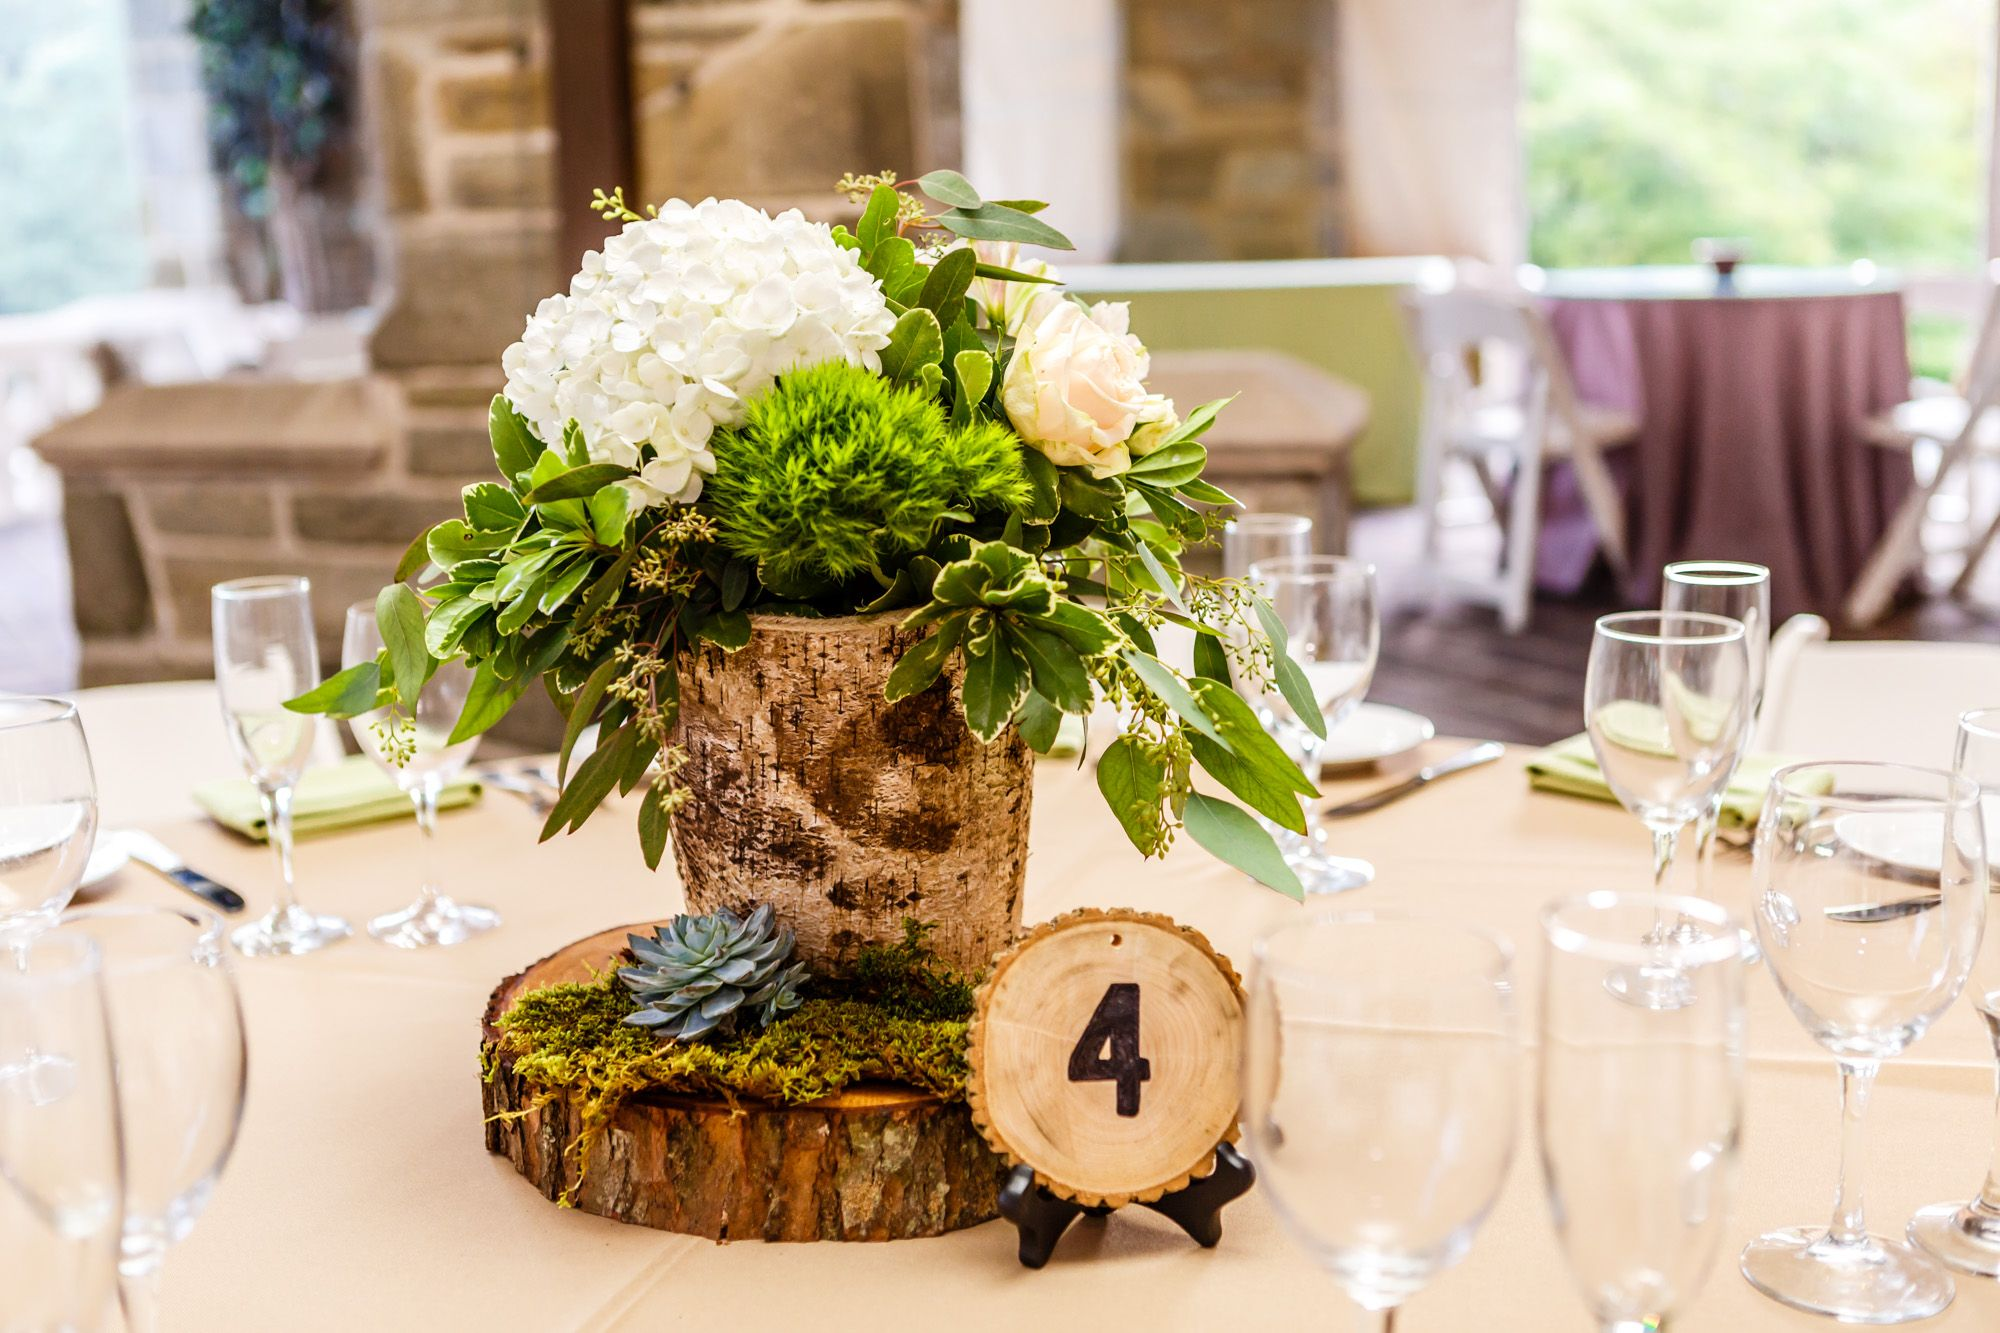 Birch Wood Centerpieces With Hydrangeas And Greenery And Wood Slab Table Numbers Wood Centerpieces Wood Slab Centerpiece Wedding Wood Centerpieces Wedding